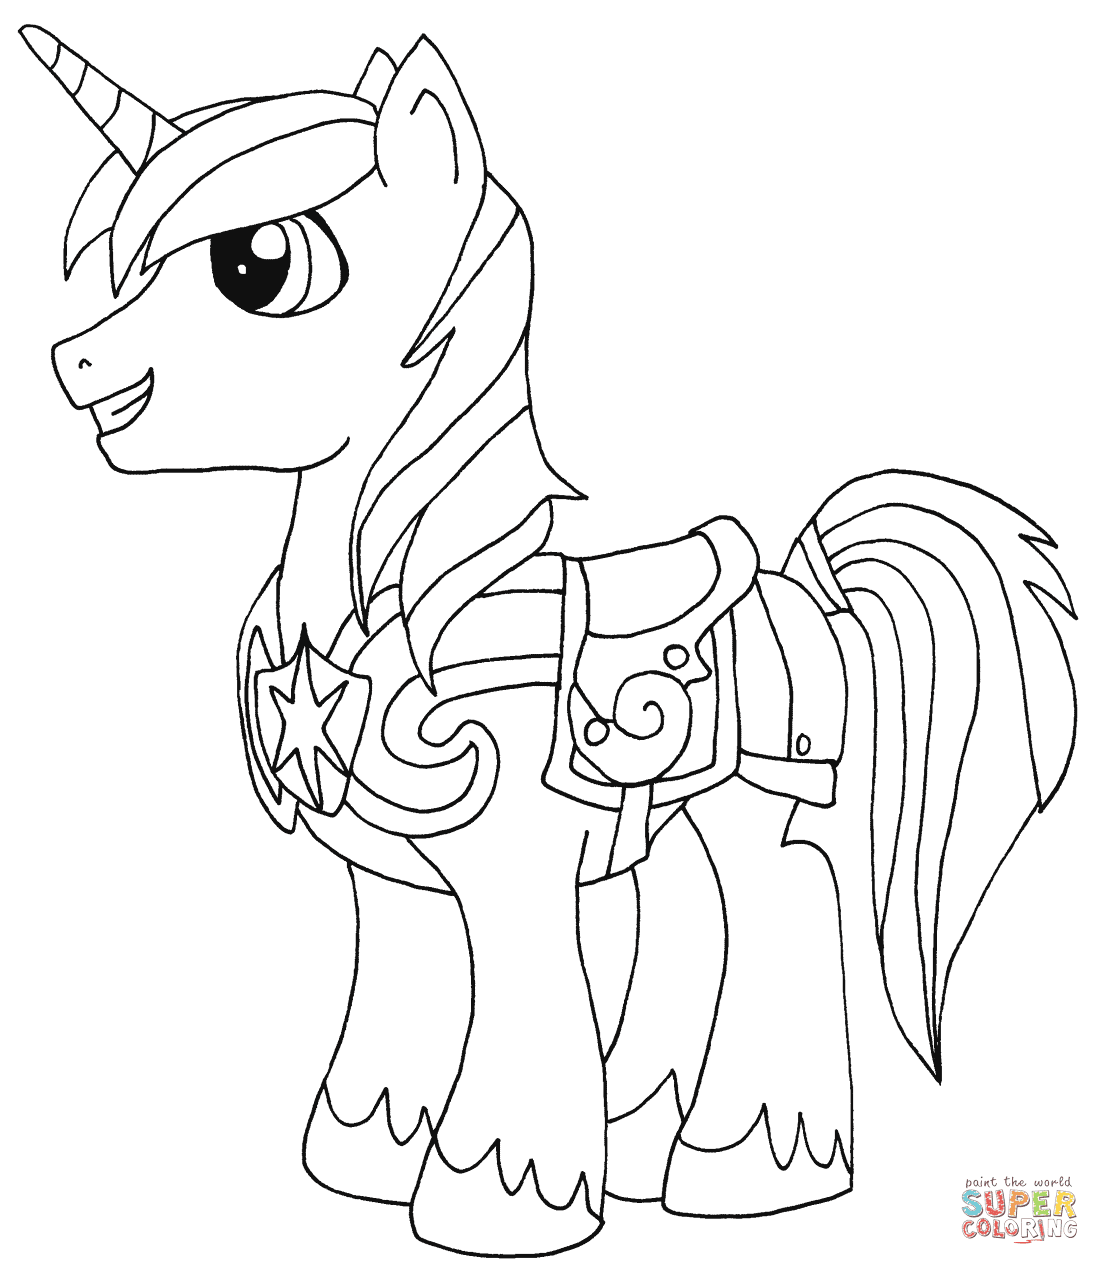 Shining Armor · Rarity Pony from My Little Pony